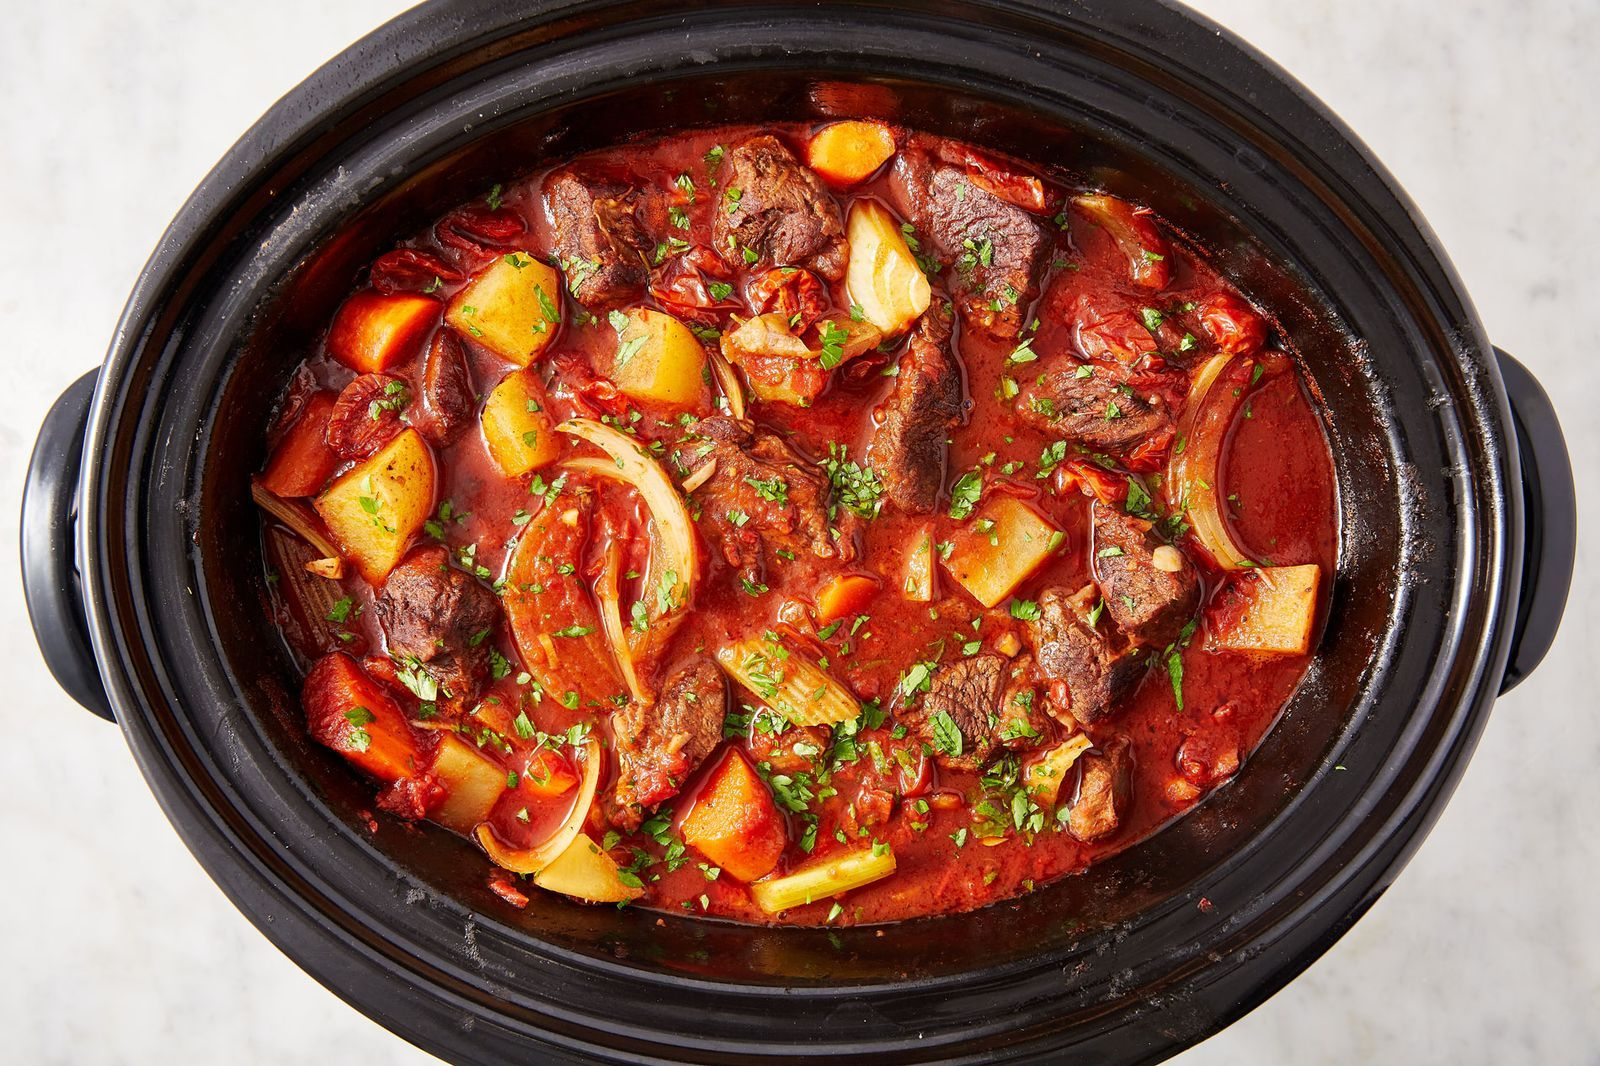 Make Slow Cooker Beef Stew And Everything Will Be Okay Recipe In 2020 Slow Cooker Beef Stew Crockpot Recipes Beef Stew Easy Slow Cooker Recipes